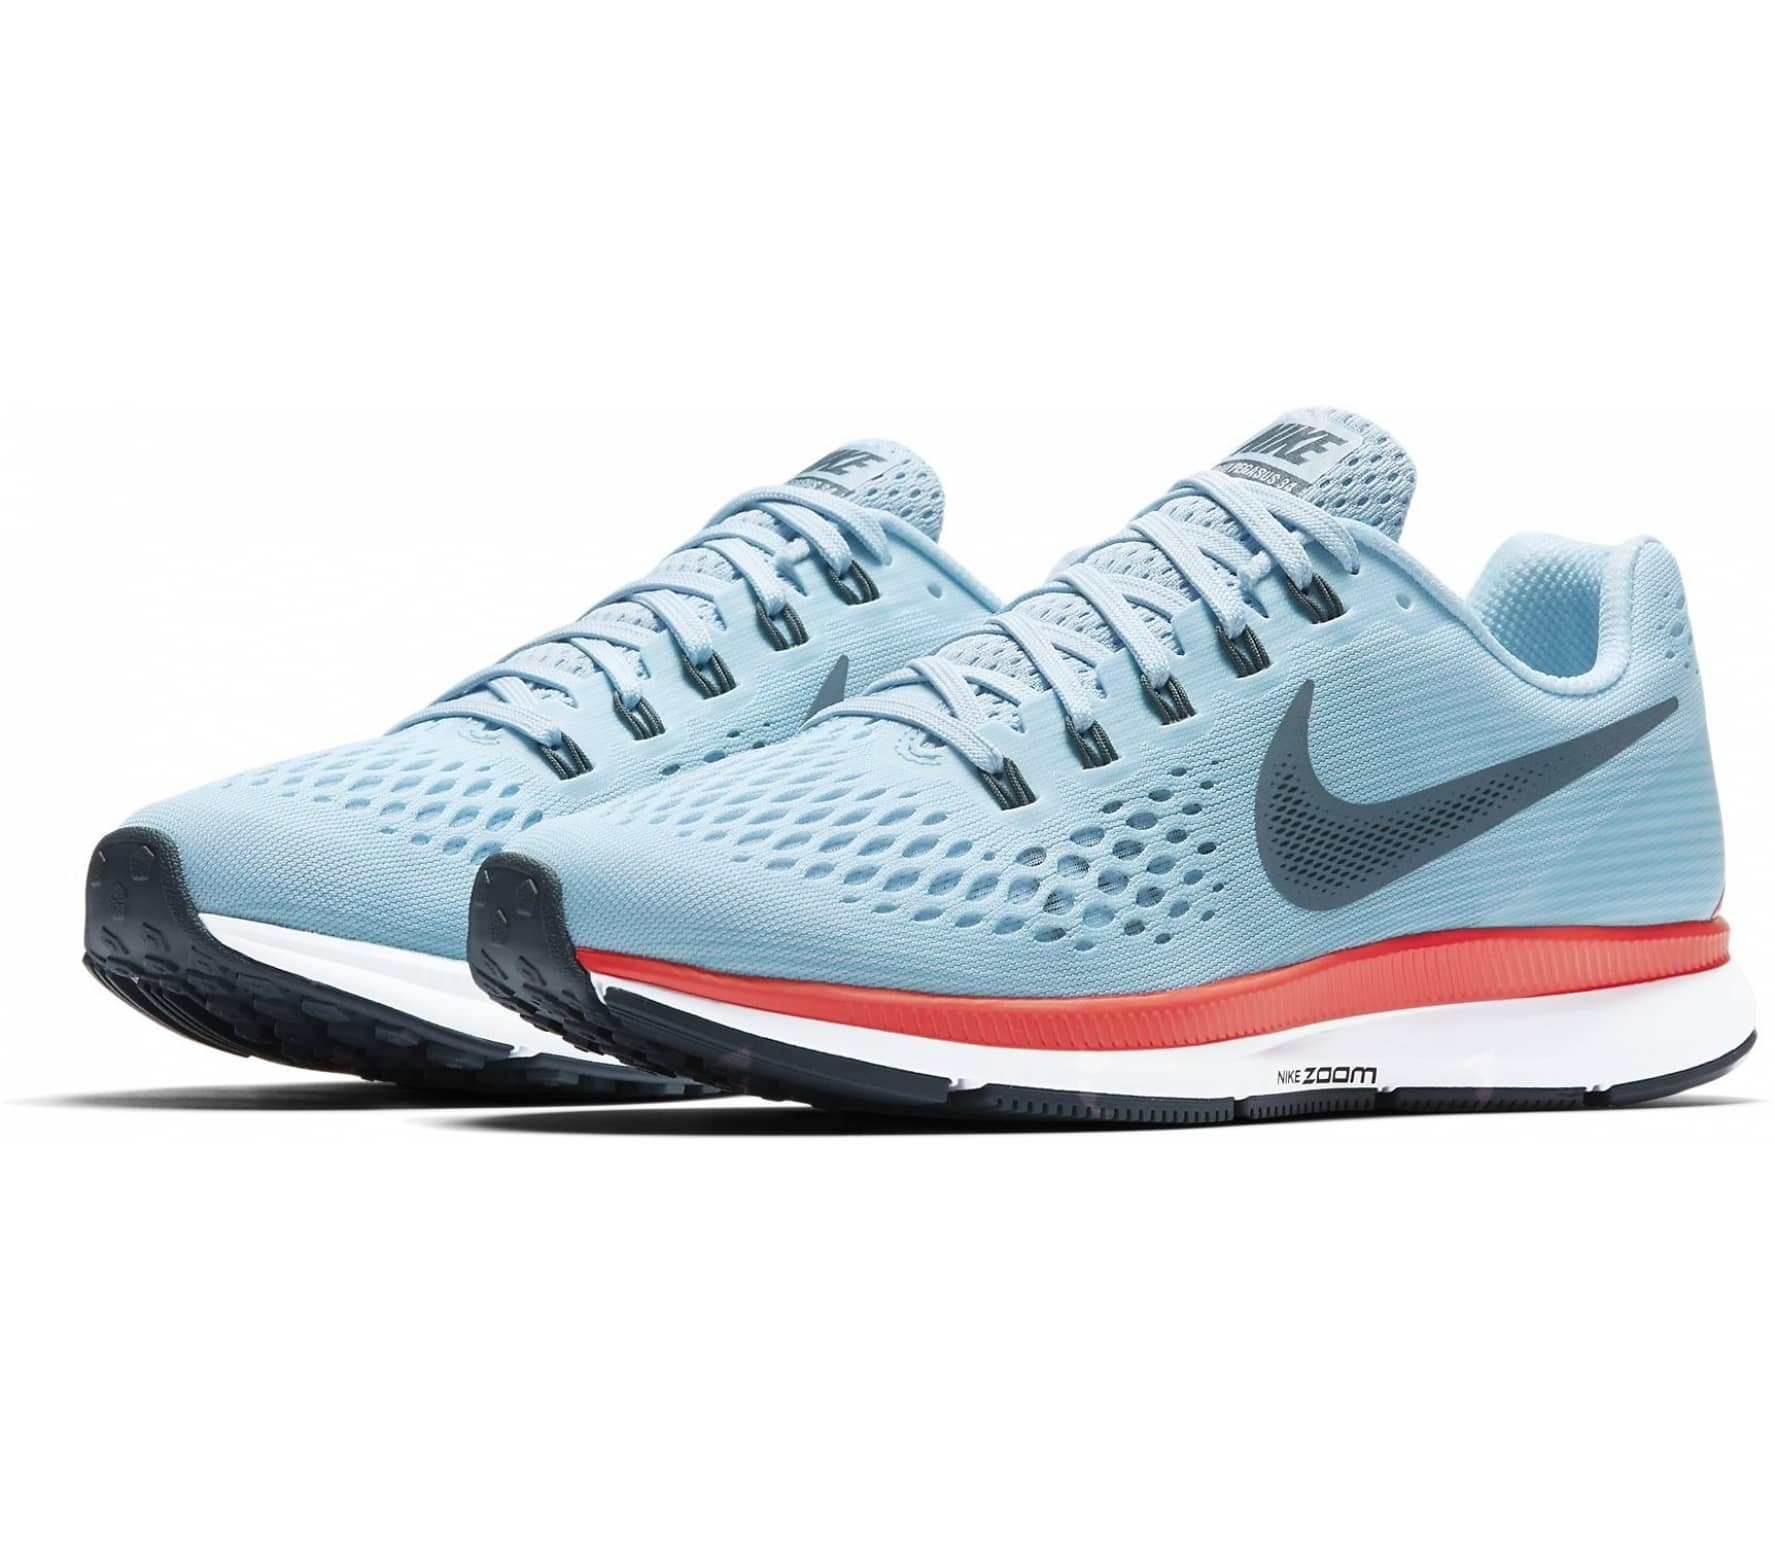 Nike - Air Zoom Pegasus 34 women s running shoes (light blue) - buy ... 94ec738205a9